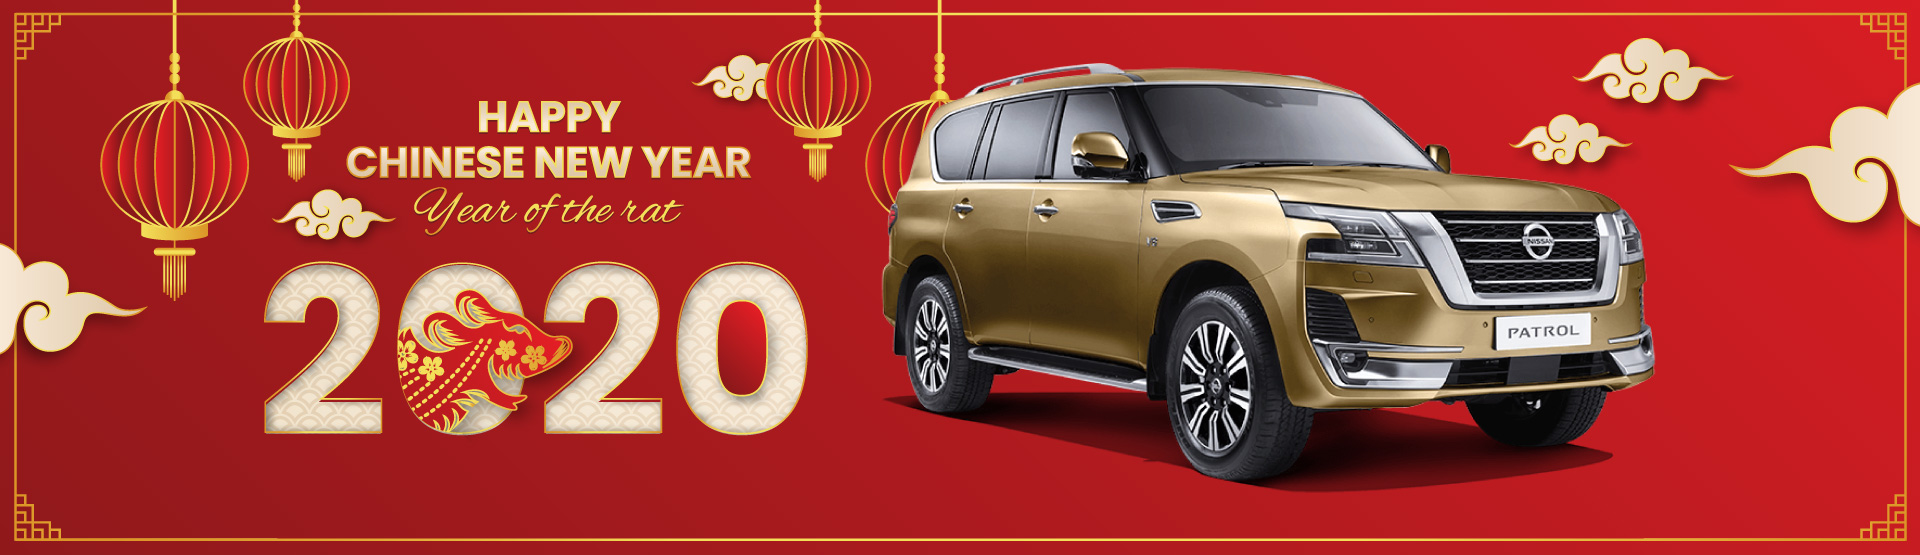 Frankston Nissan Chinese New Year Banner